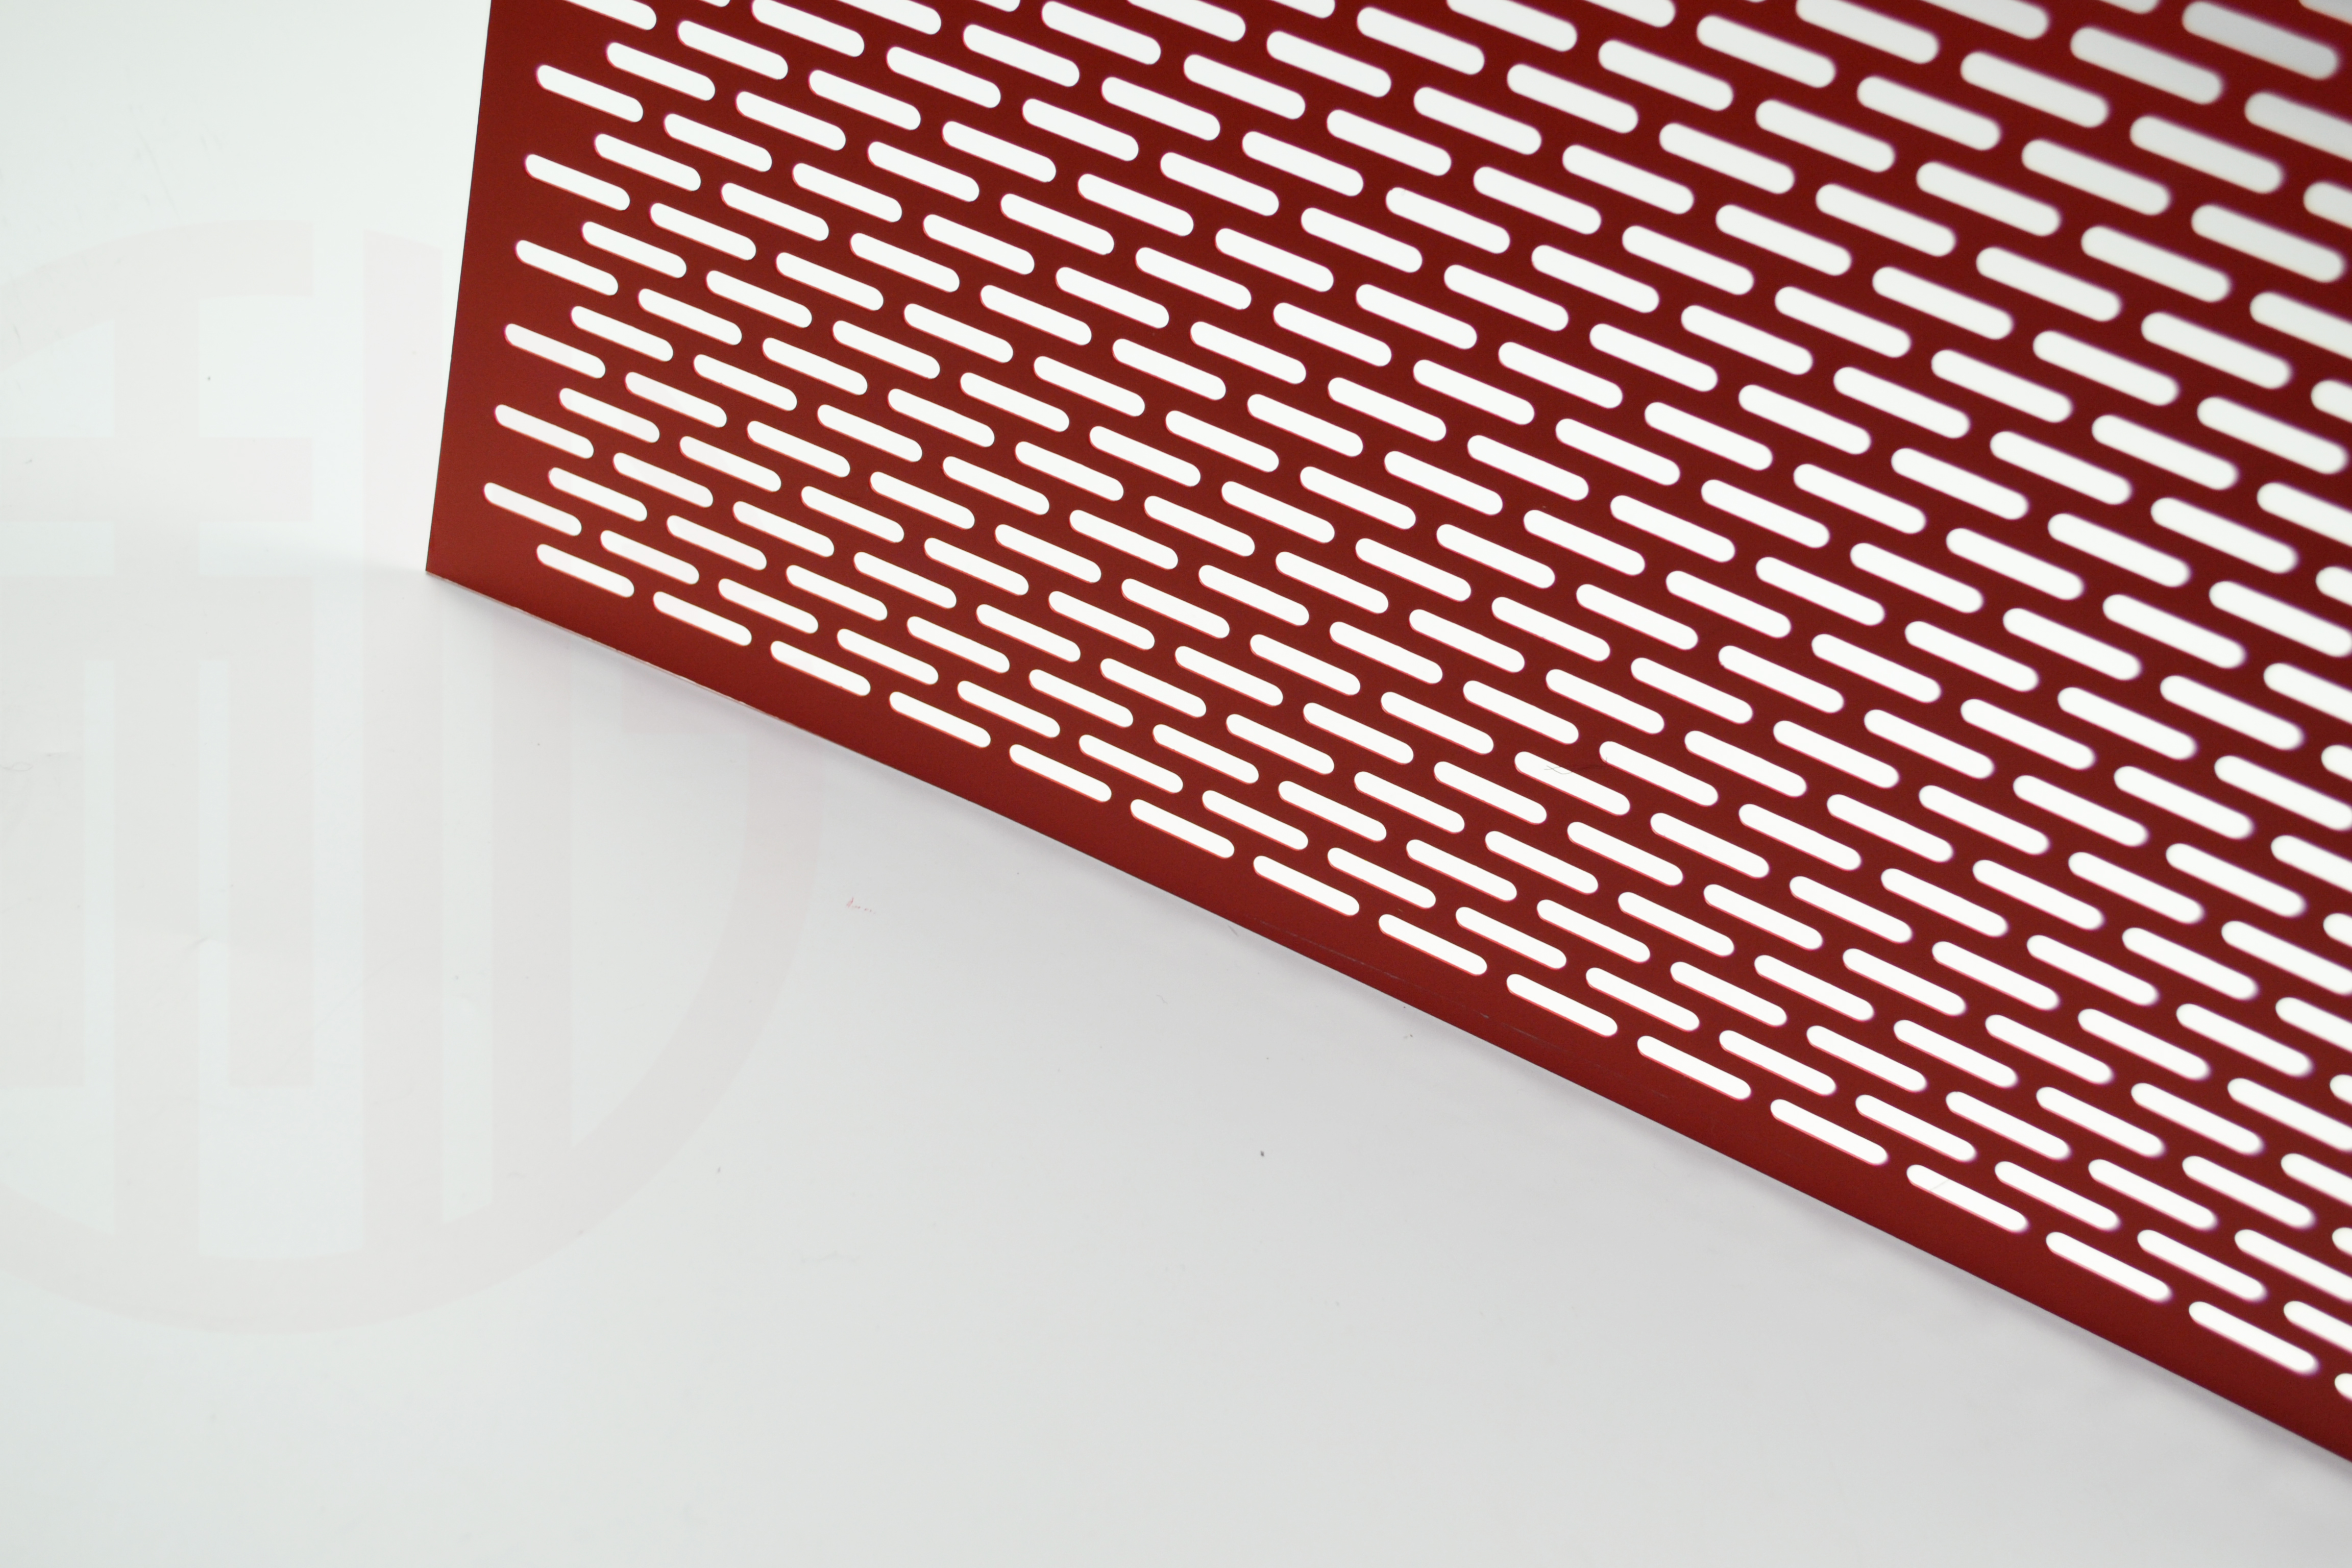 corrugated cladding for prod product aluminum decor sheet metal fielitz perforated facade decorative